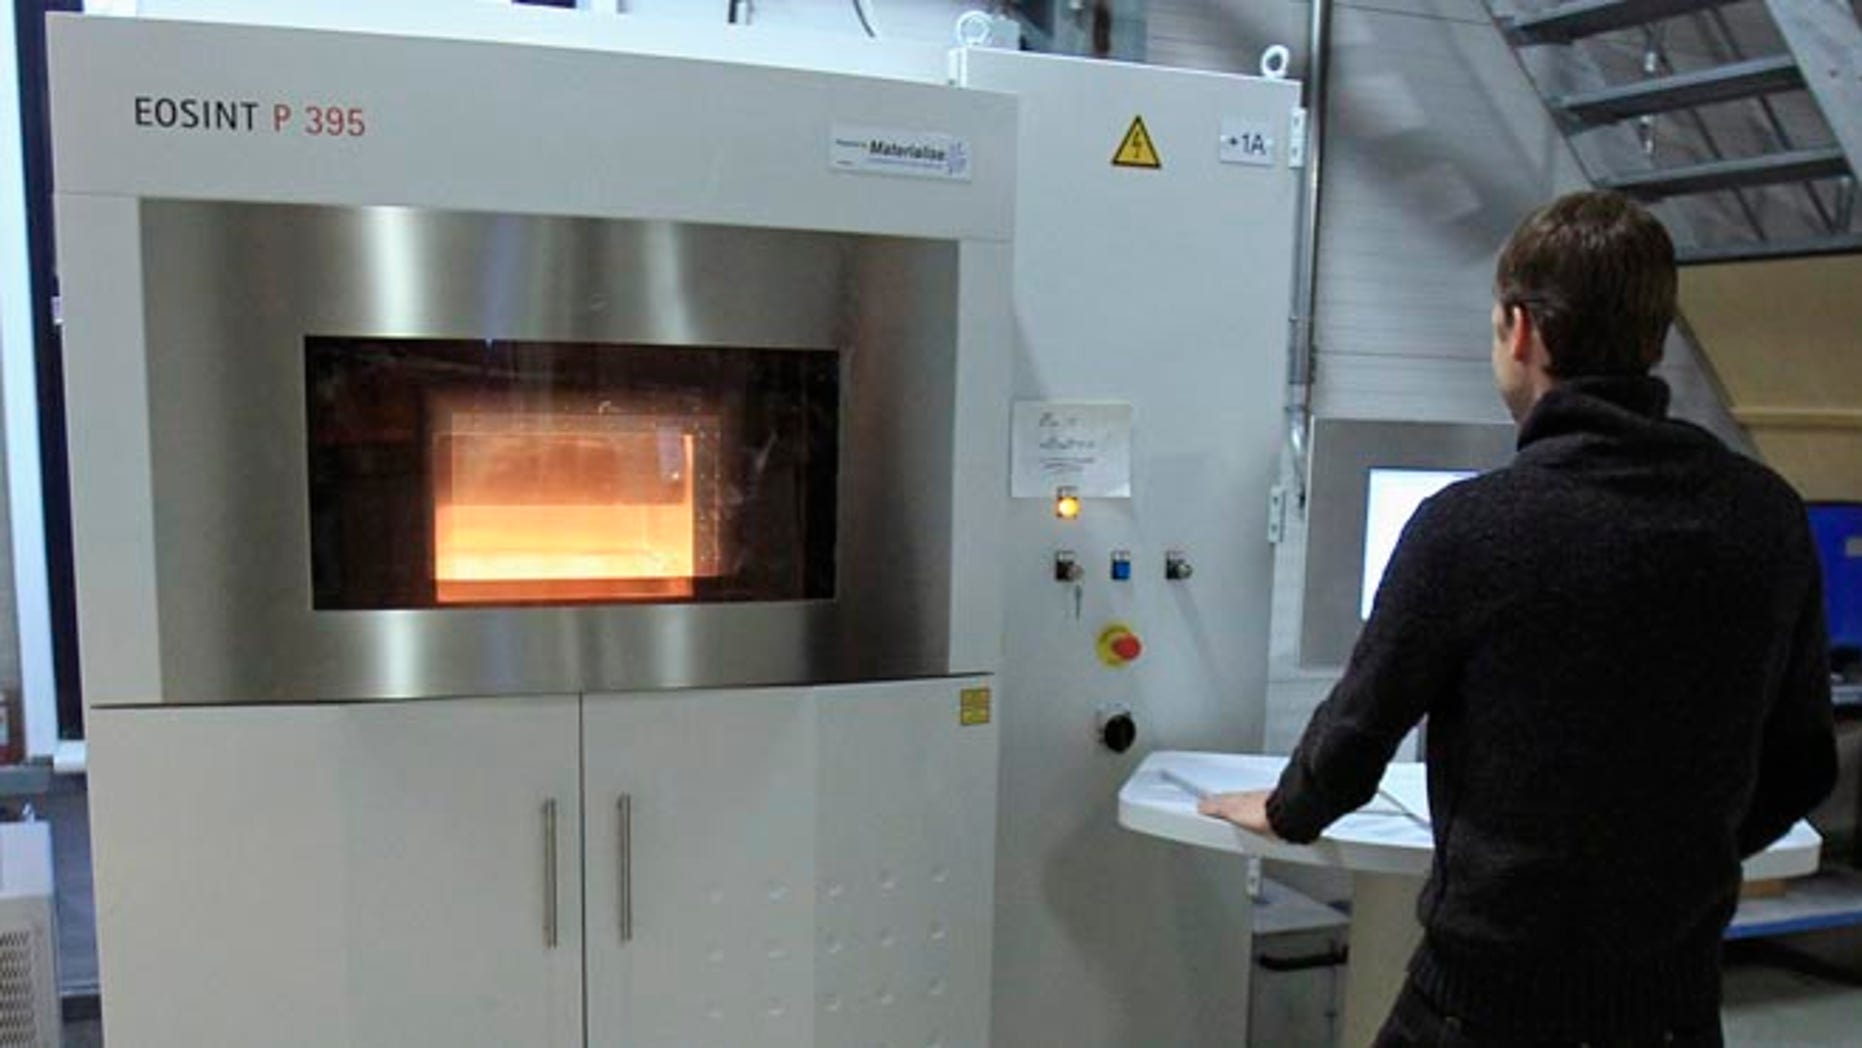 A technician at Belgian company Materialise, the biggest 3D printer in Europe, operates a laser sintering machine that uses high-powered lasers to fuse particles of plastic, layer by layer, to create 3D objects, at the company's headquarters in Leuven.